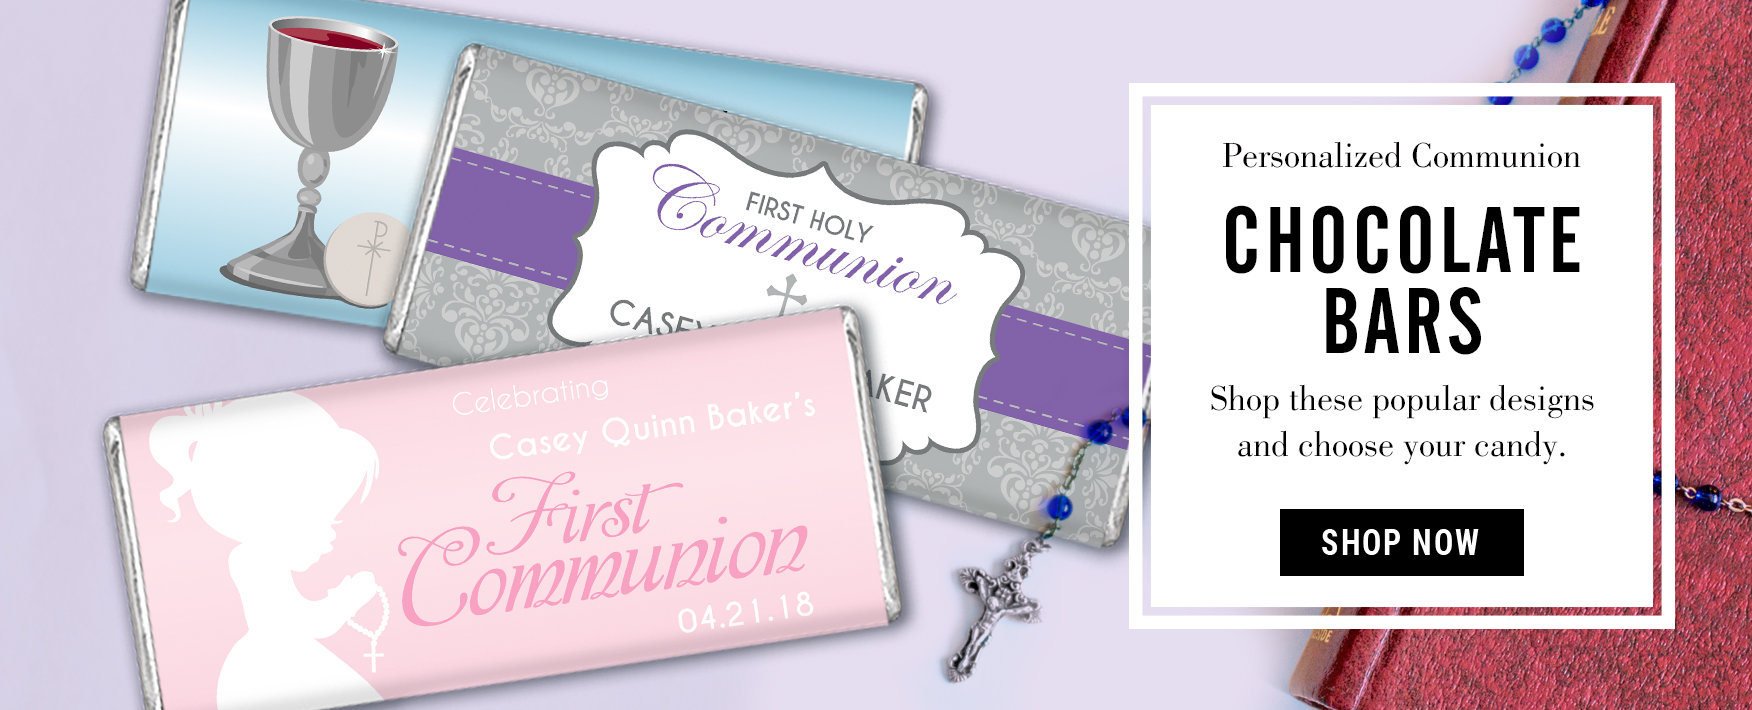 Personalized First Communion Chocolate Bars